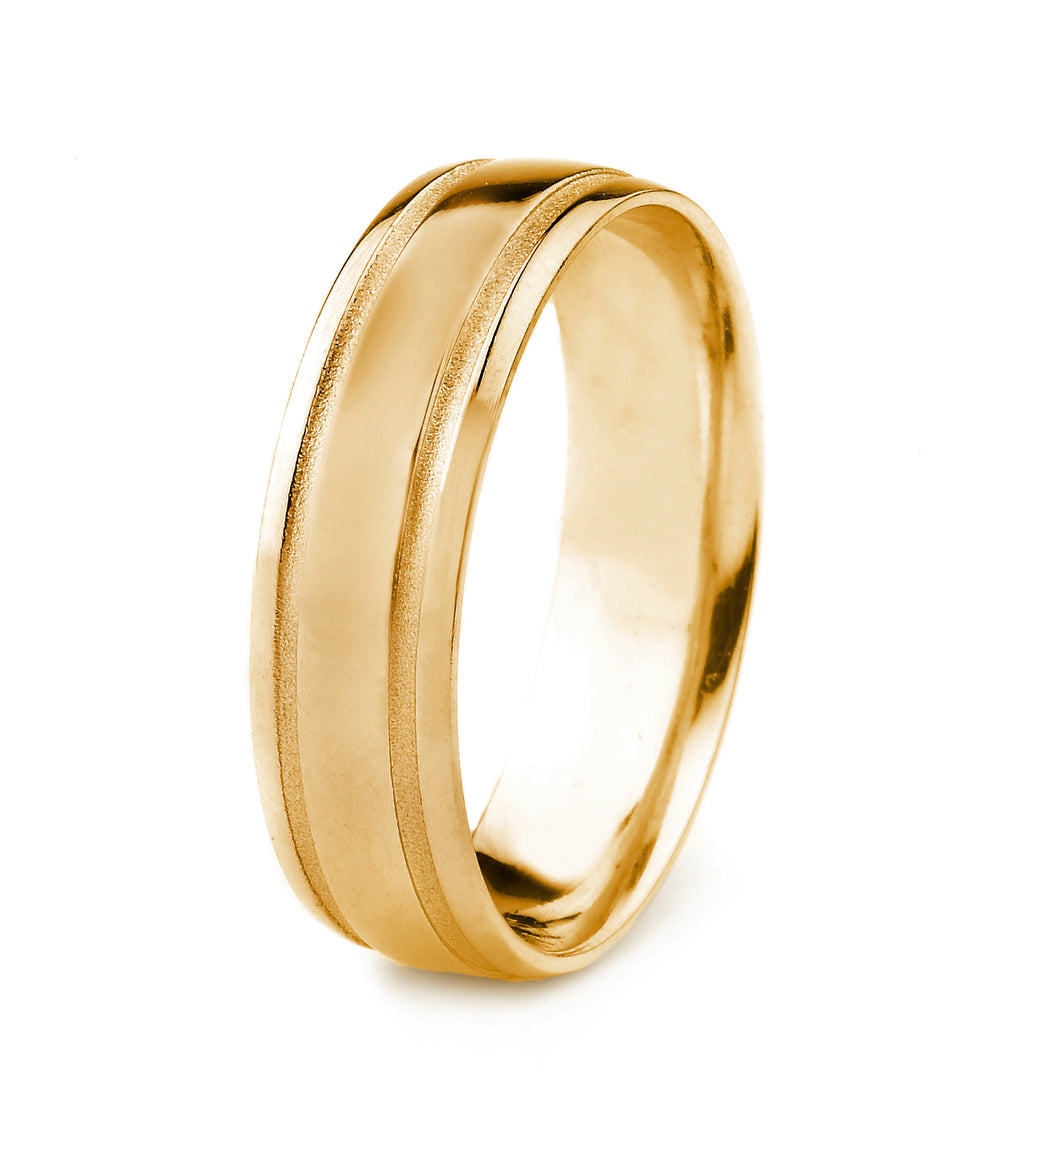 14K GOLD MENS WEDDING BAND WITH POLISHED FINISH AND PARALLEL MATTE GROOVES